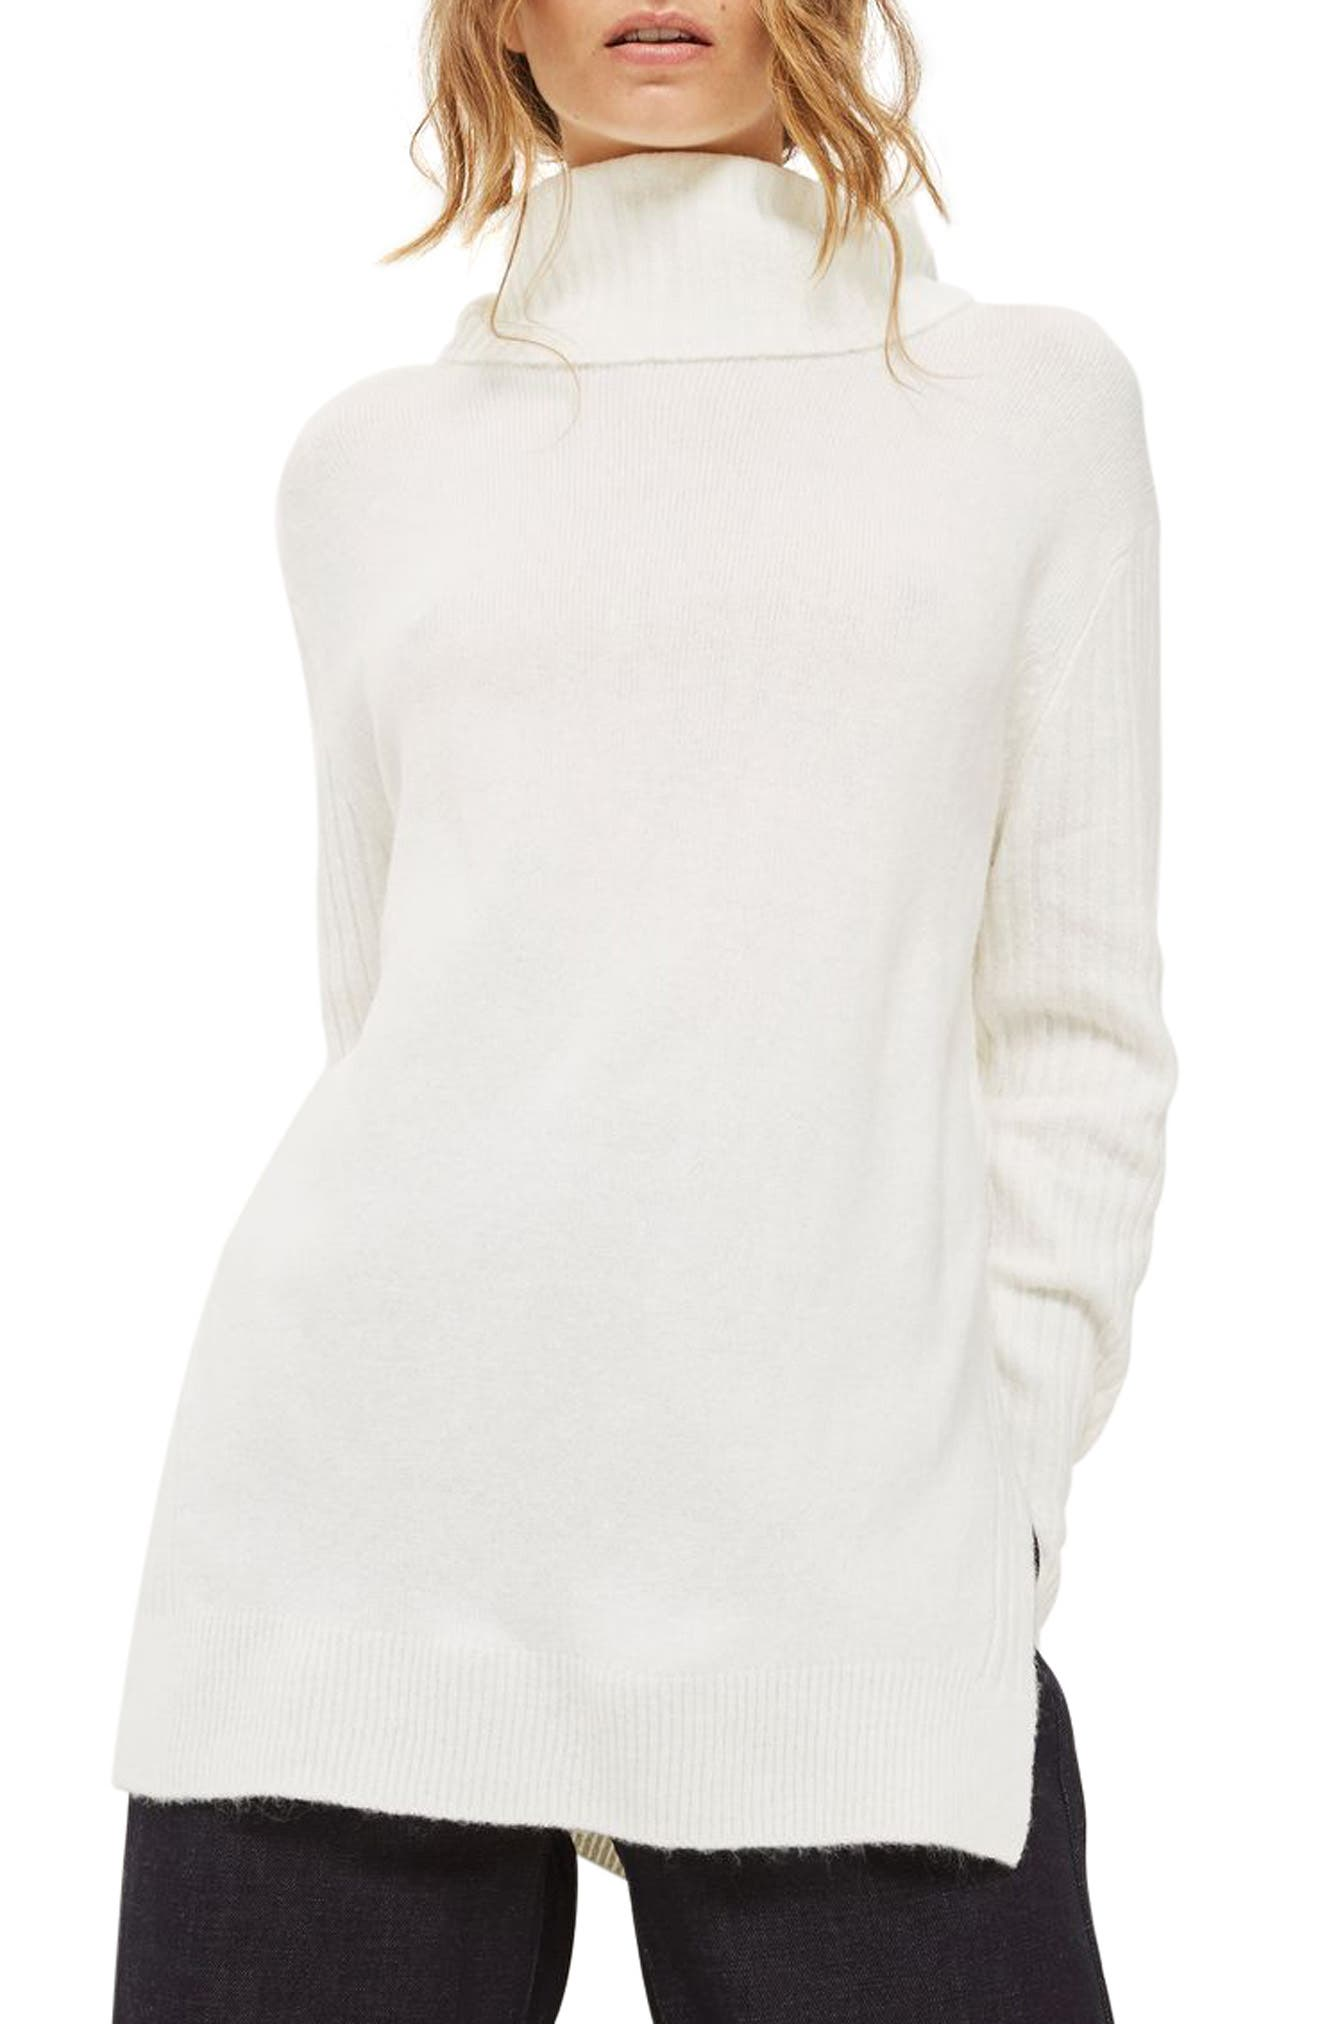 Alternate Image 1 Selected - Topshop Oversize Turtleneck Sweater